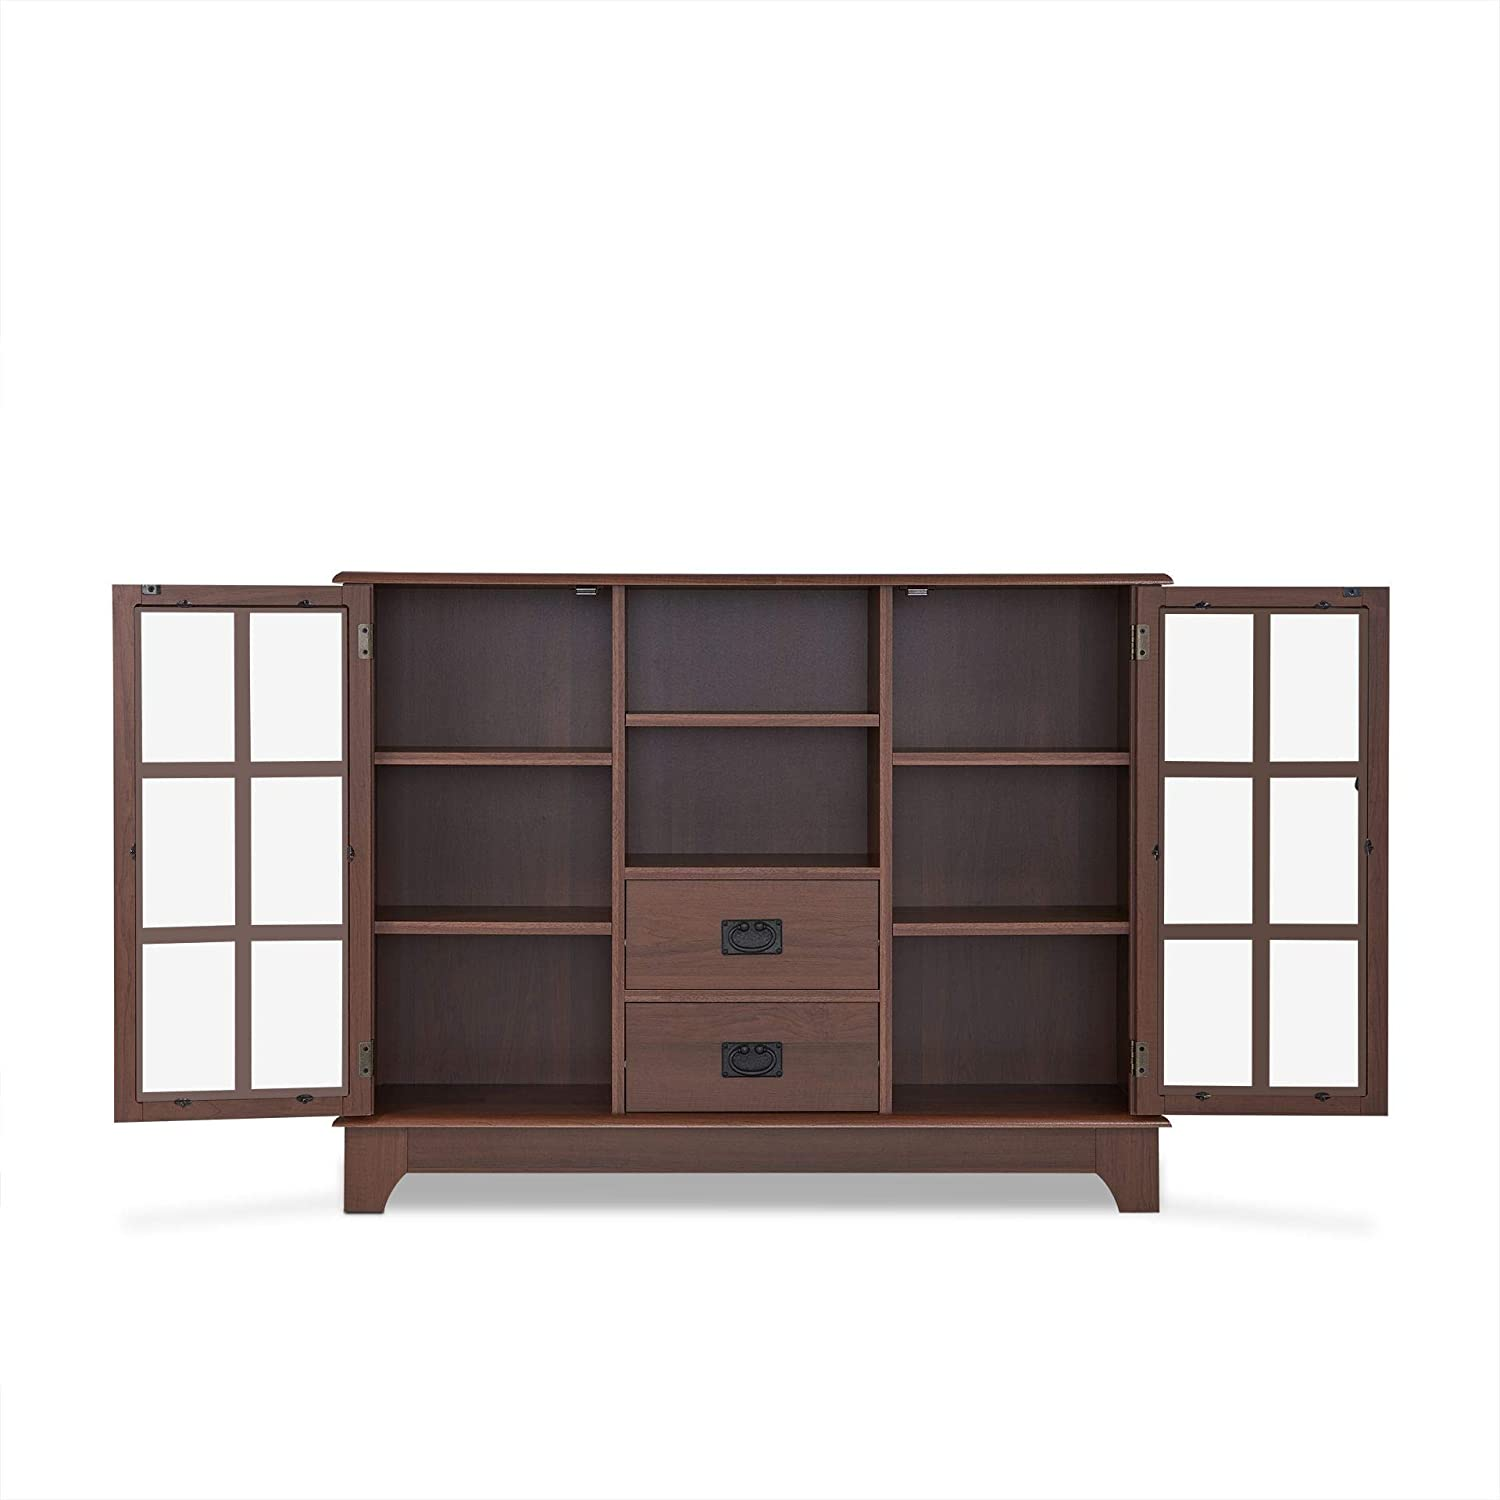 Espresso 42 L x 12 W x 32 H 2 Open Compartments /& 2 Glass Doors Knocbel Contemporary Console Table Buffet Sideboard Storage Cabinet with 2-Drawer